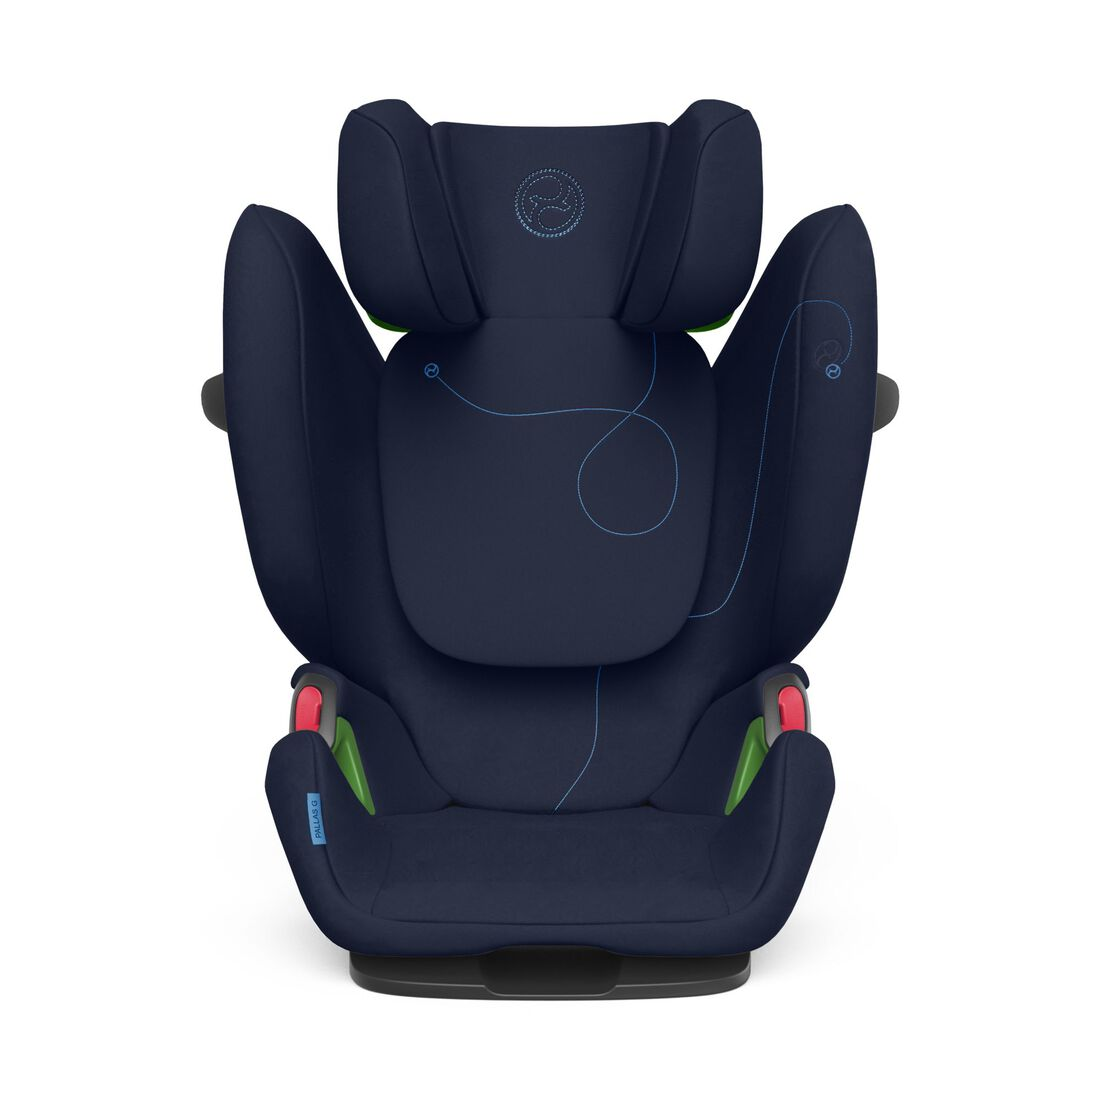 CYBEX Pallas G i-Size - Navy Blue in Navy Blue large image number 8